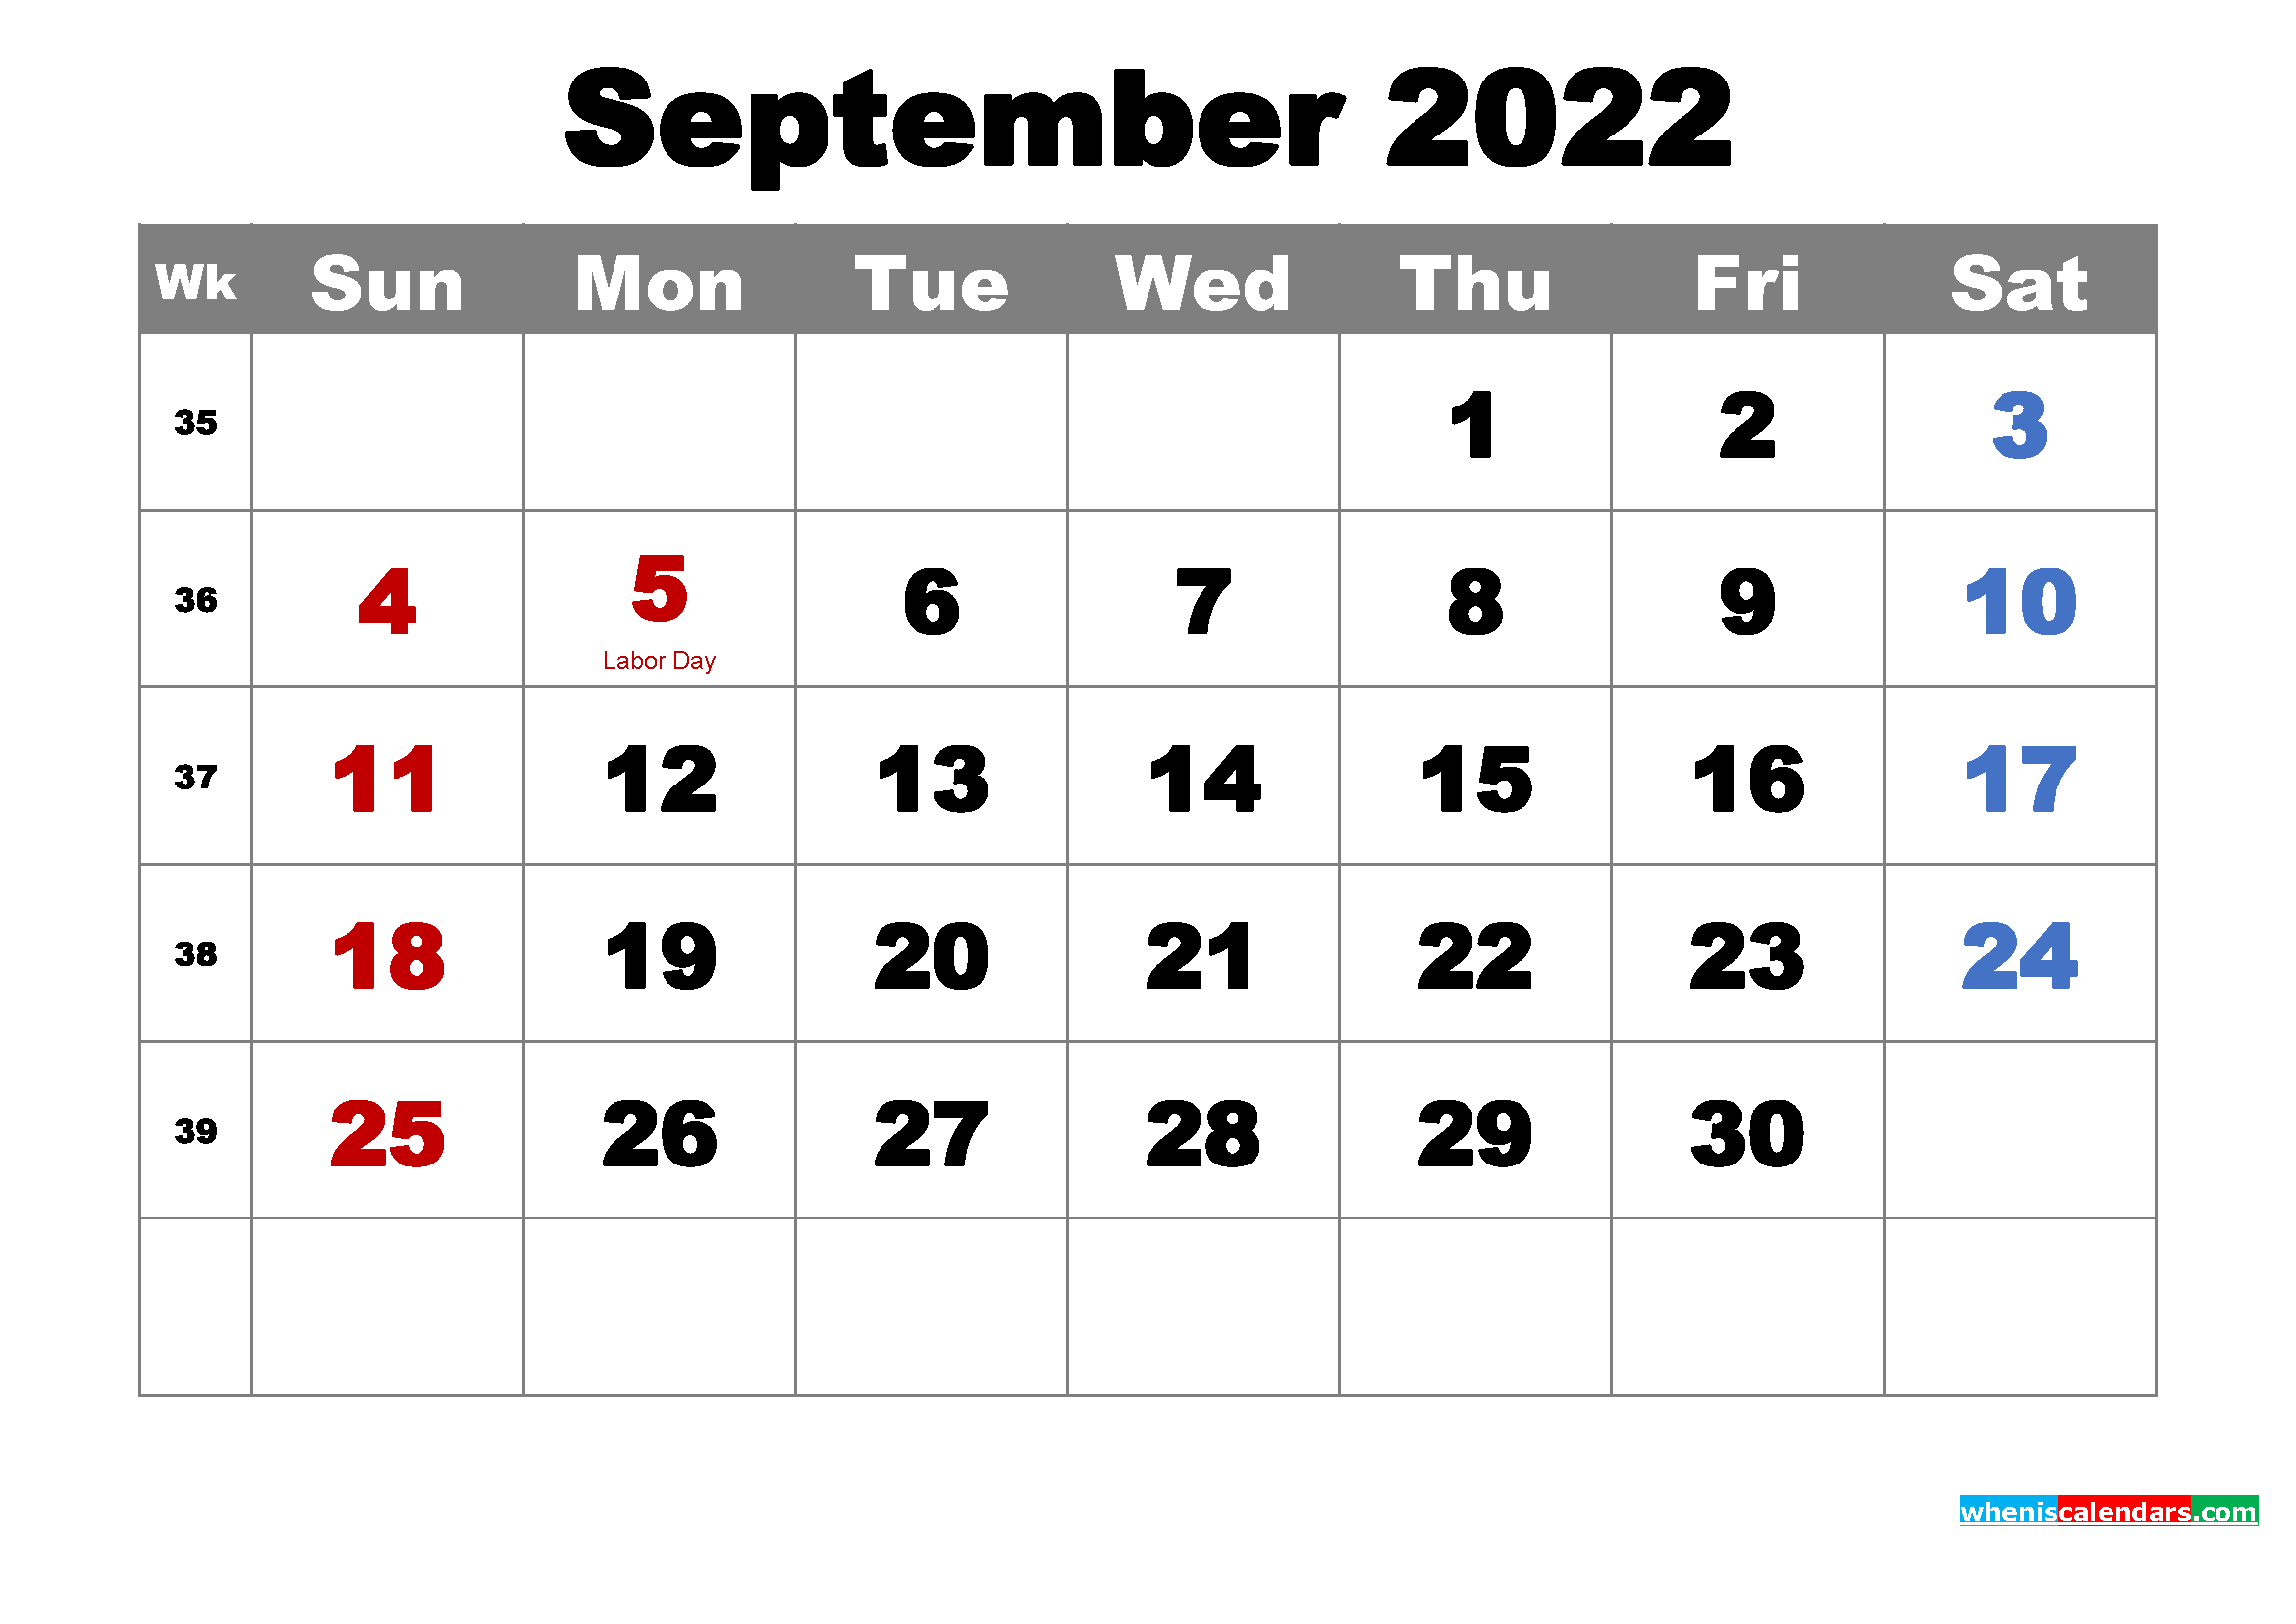 Printable Calendar September 2022 with Holidays as Word, PDF